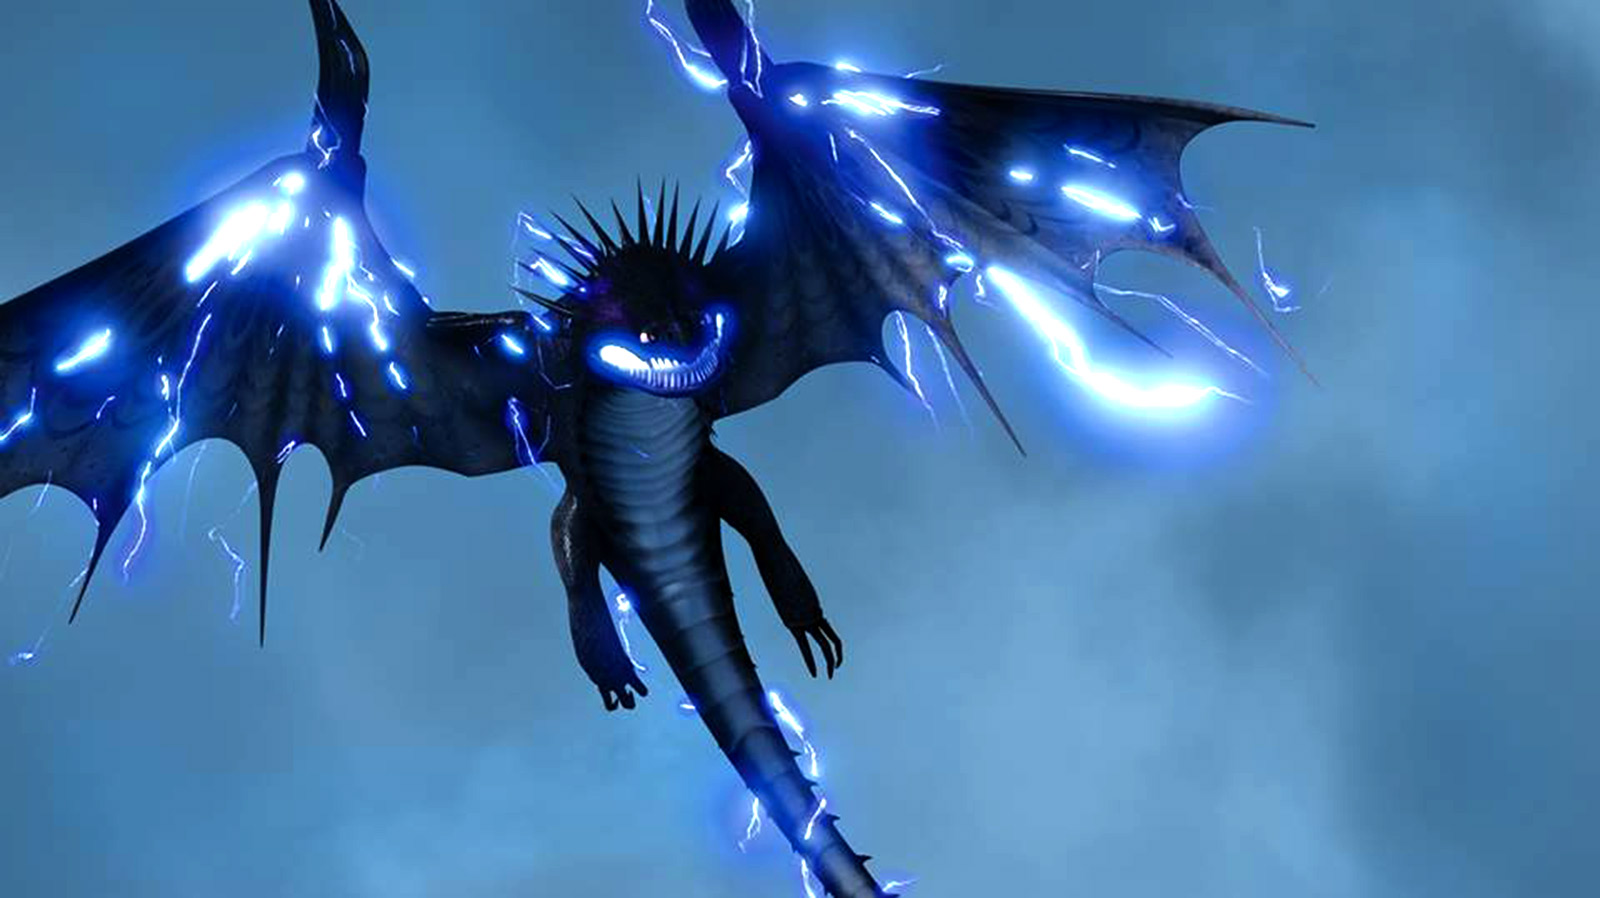 nightfury wallpaper how to train your dragon 2 pictures wallpapers 1600x898